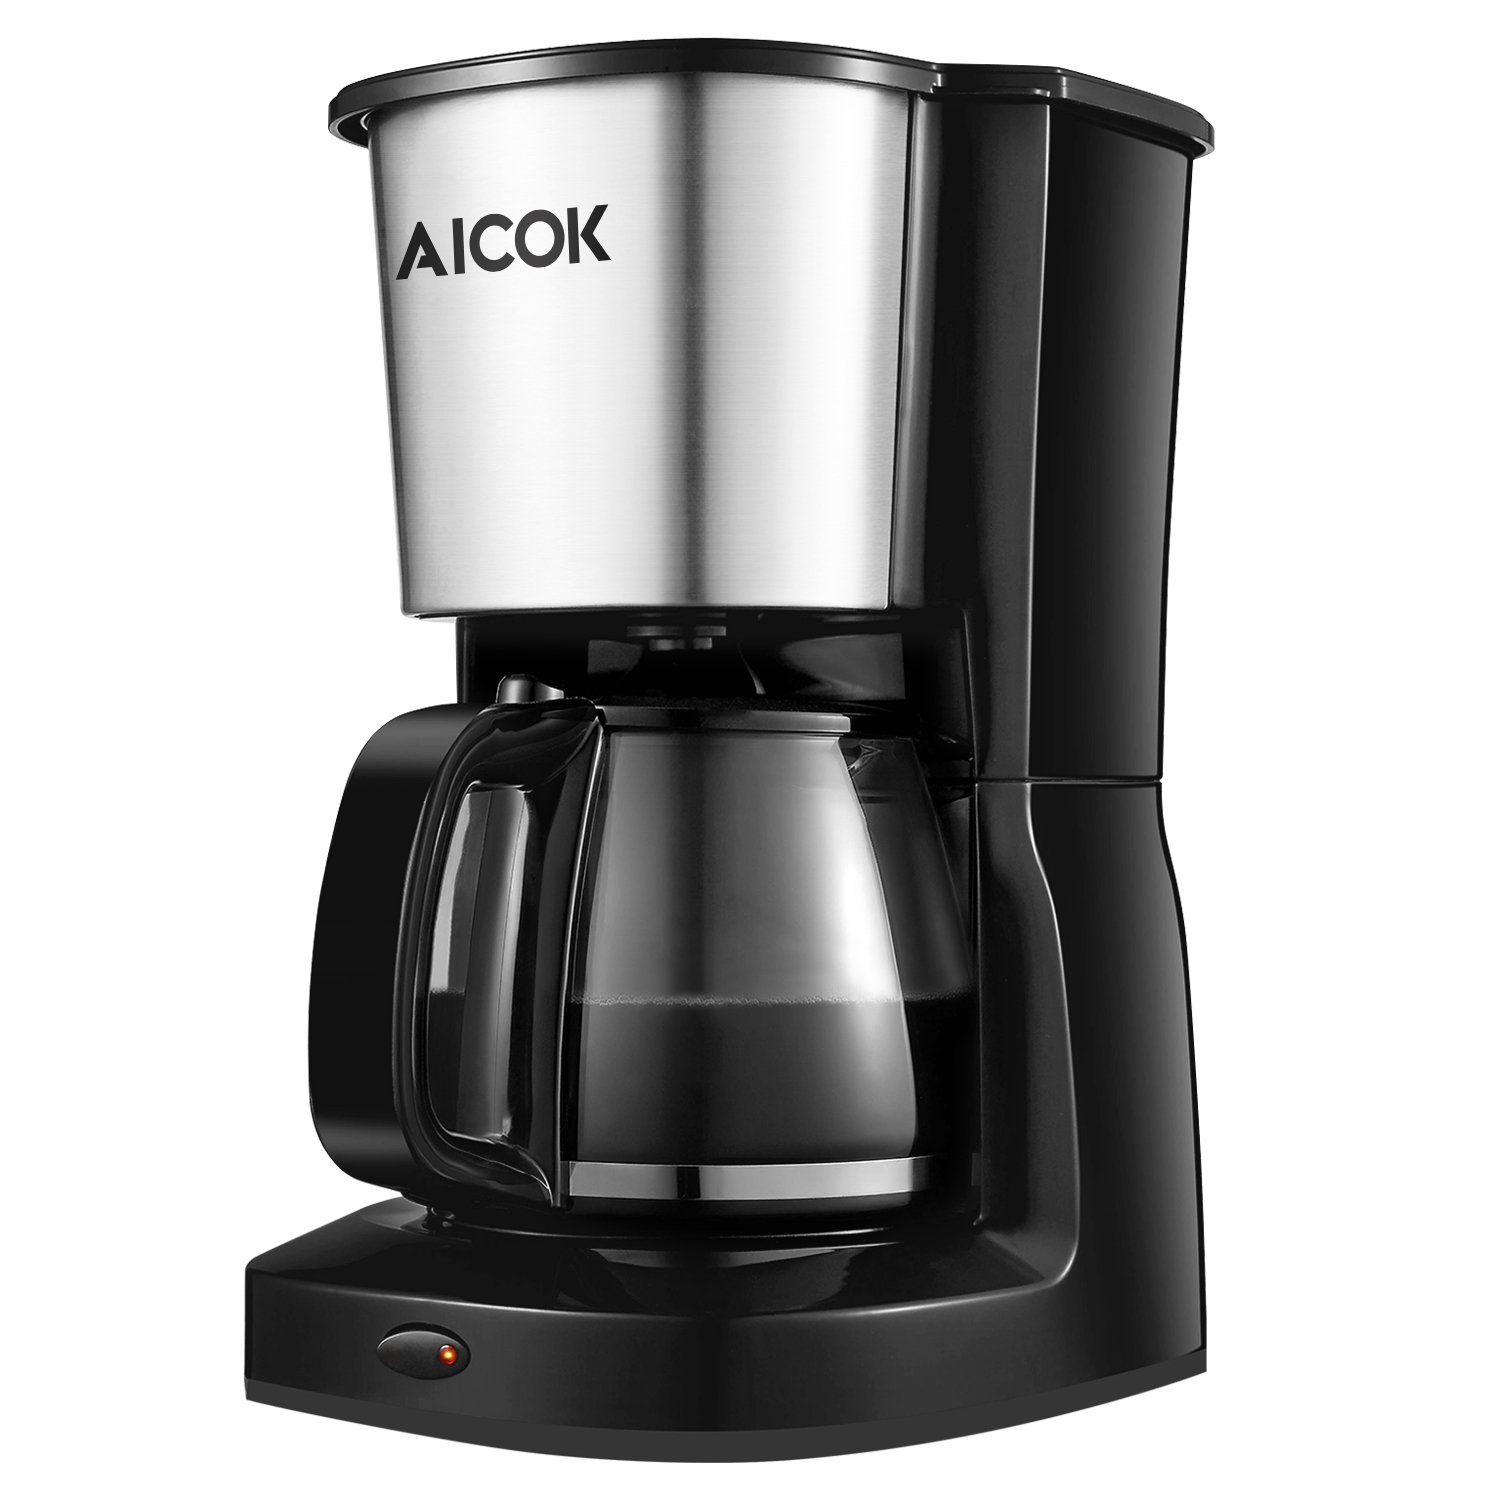 Aicok 10-Cup Home Coffee Maker Drip Coffee Machine Basket Filter Finish Includes Glass Coffee Pot, One Touch Coffee Brewer Brushed Stainless Steel, Black